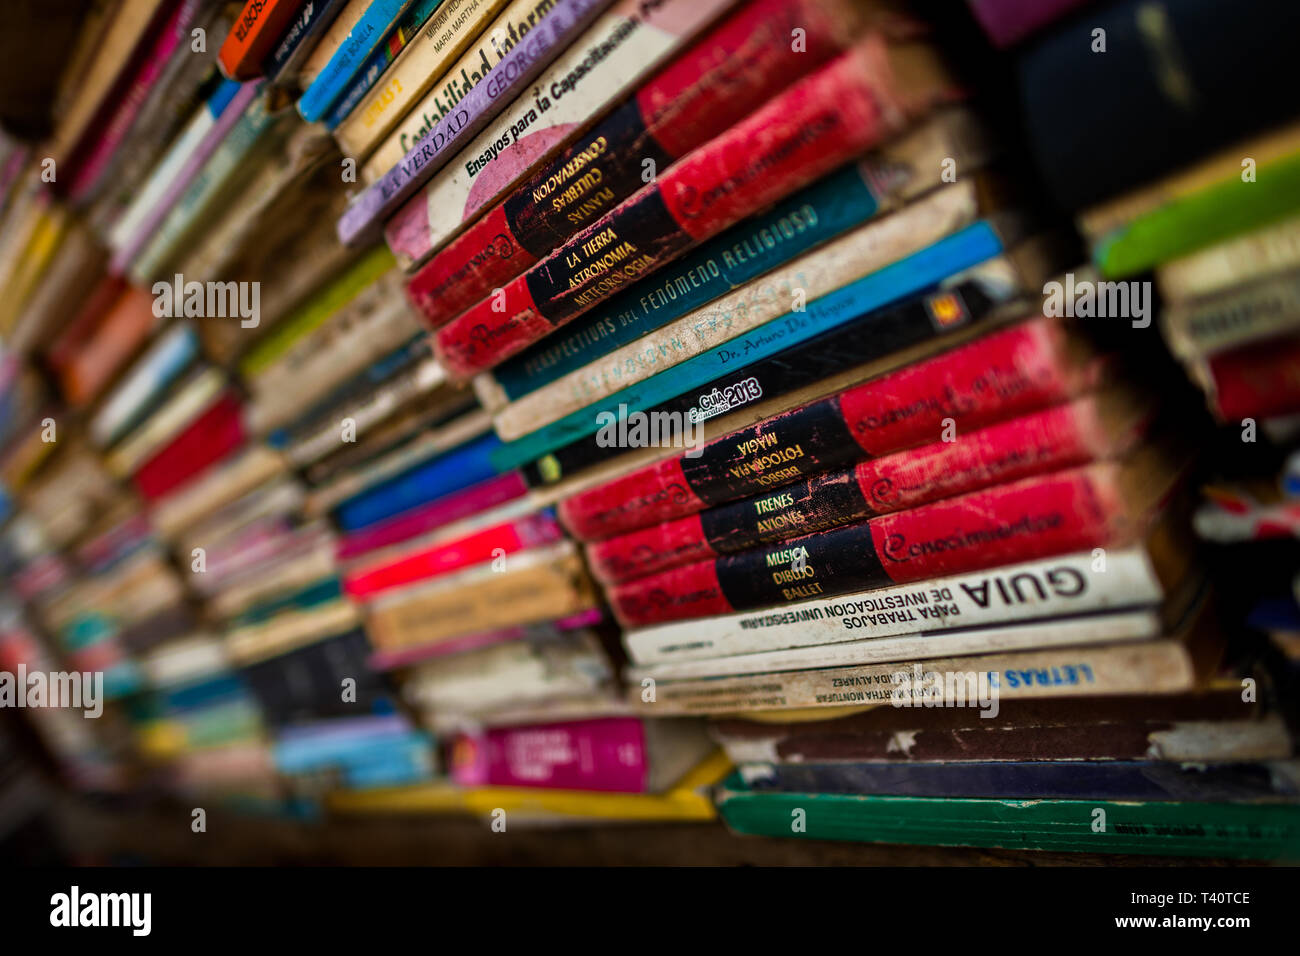 Spines of used books are seen stacked in a secondhand bookshop in San Salvador, El Salvador. - Stock Image